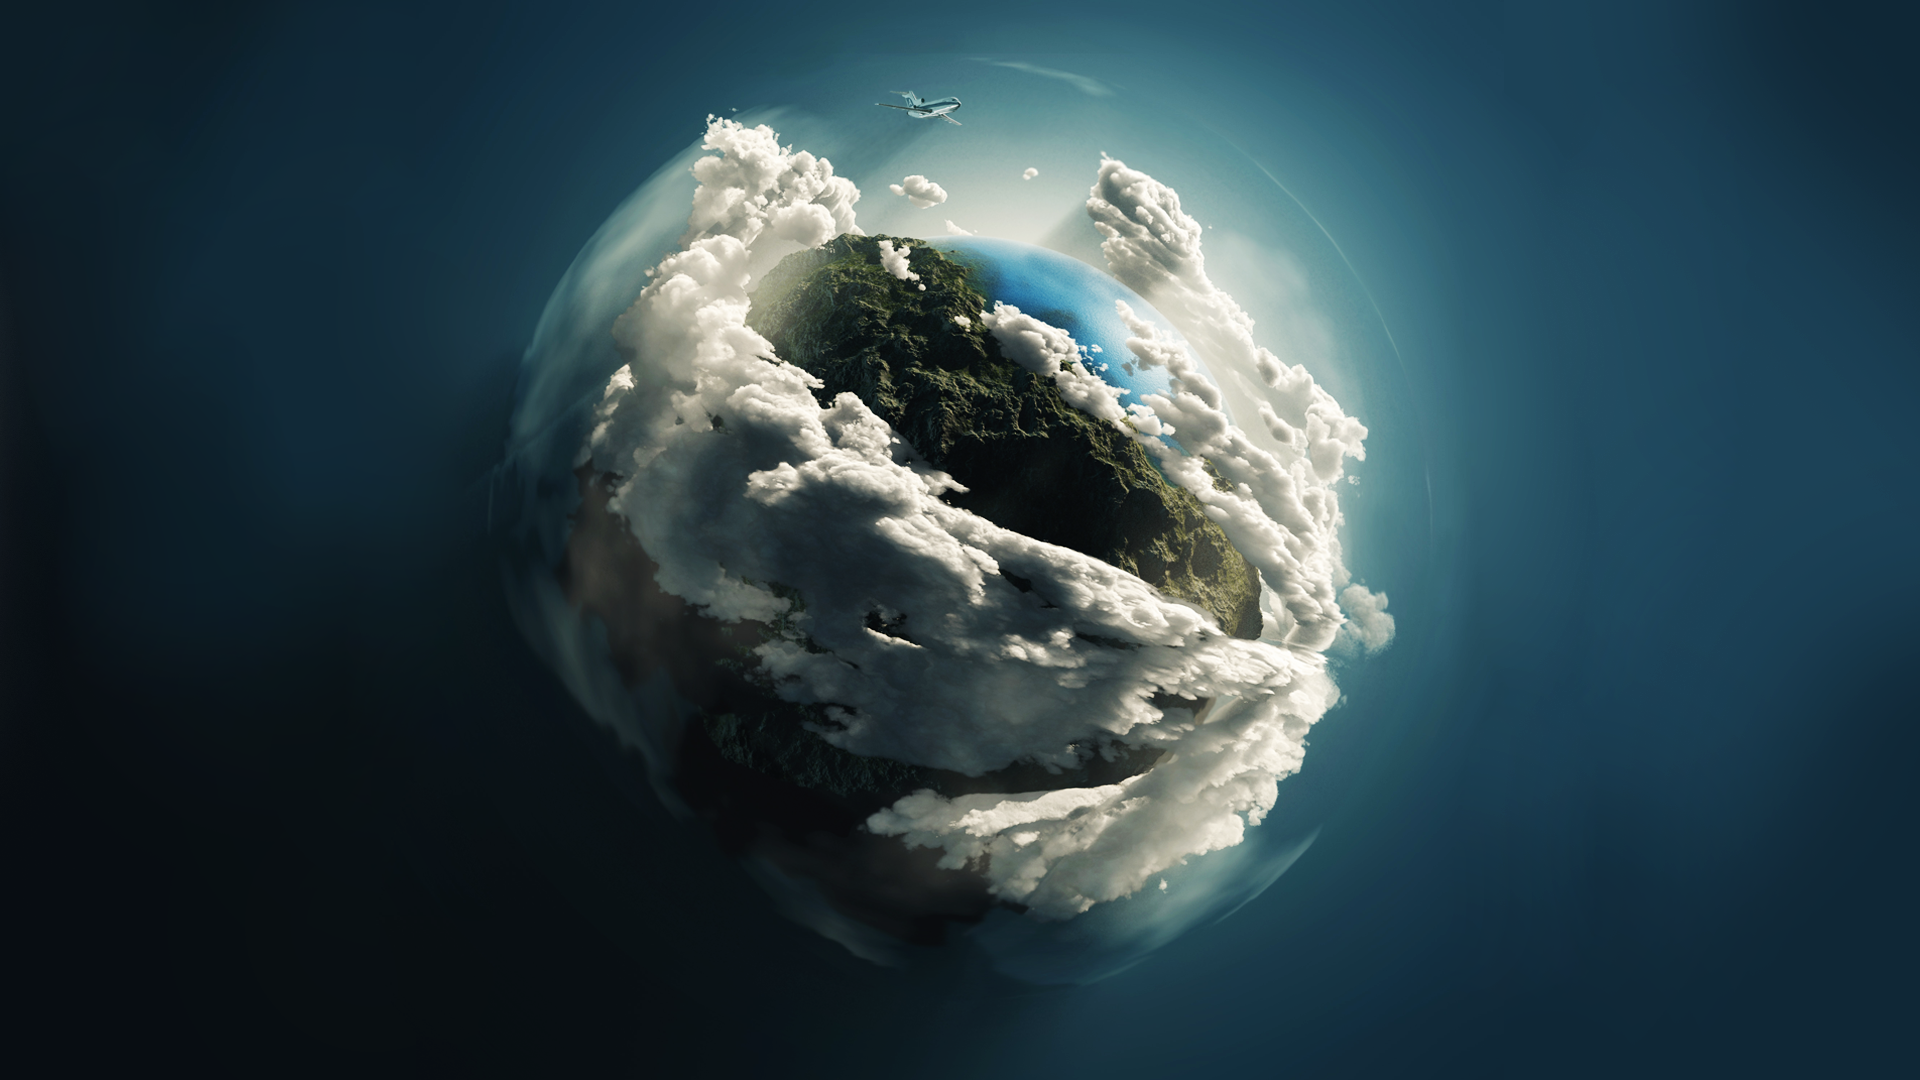 Earth tierra wallpaper hd by krysis08 on deviantart for Coolest images in the world